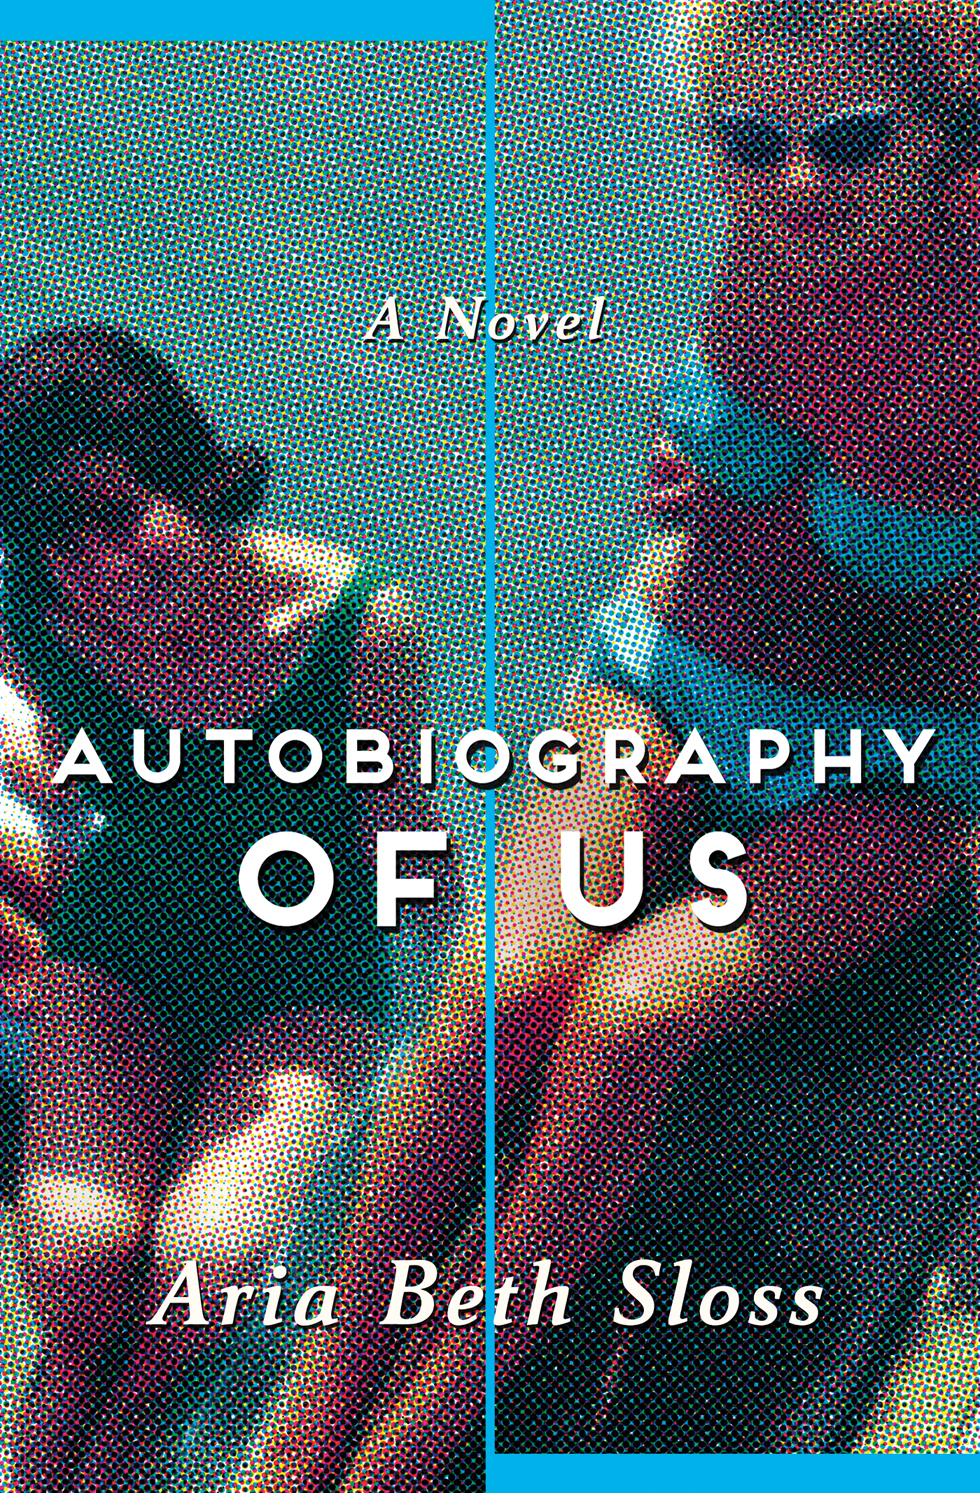 Autobiography of Us Book Cover Mar 13 p158